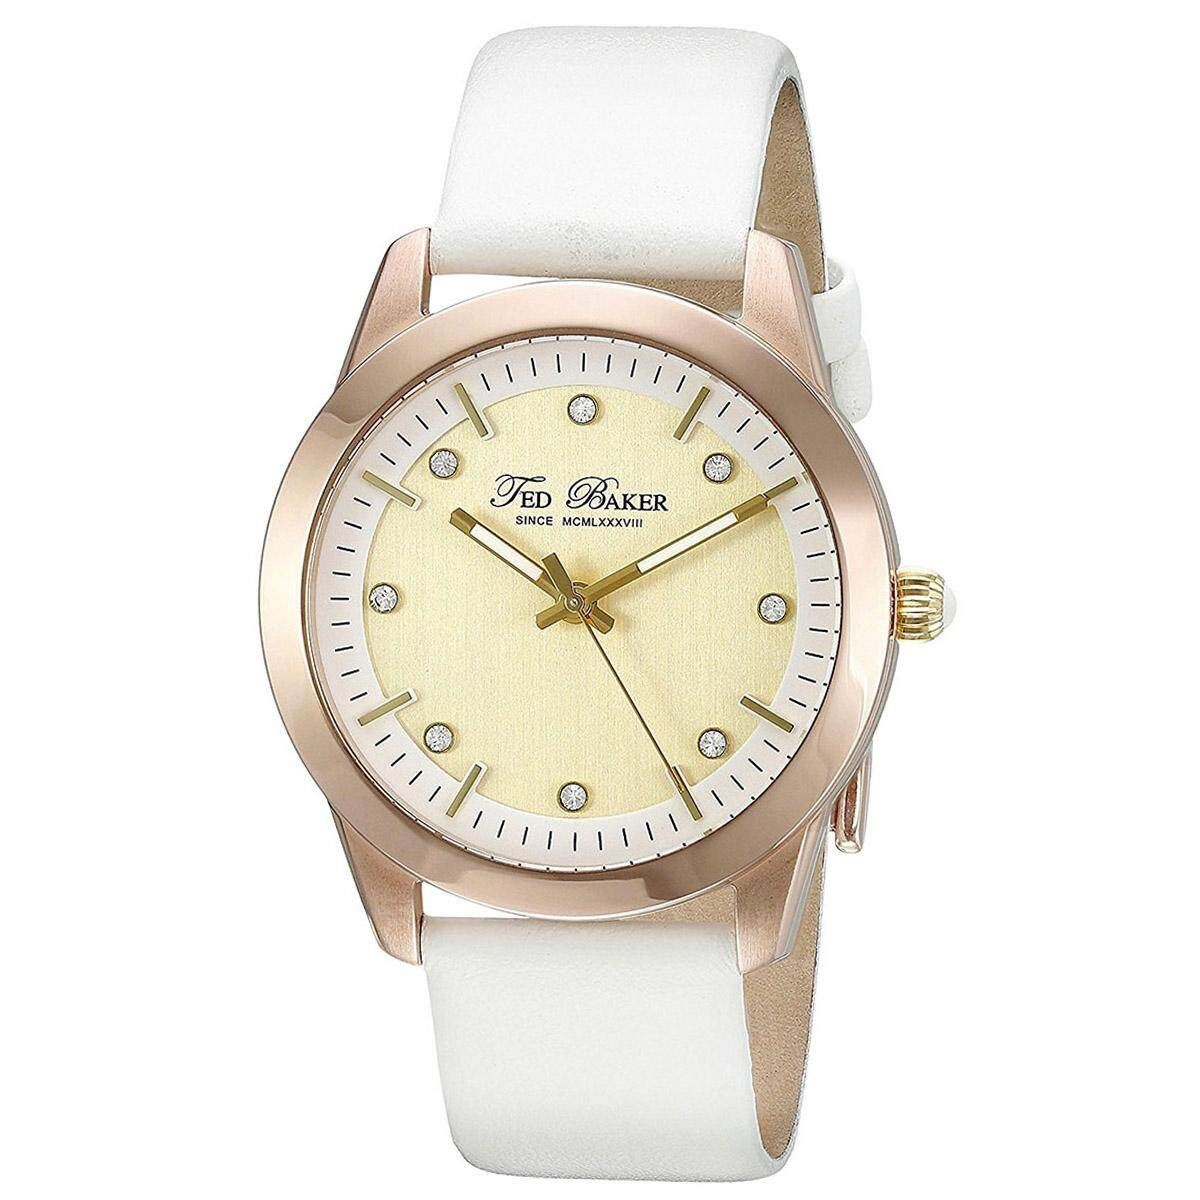 c868c895958 Ted Baker Philippines: Ted Baker price list - Ted Baker Watches ...